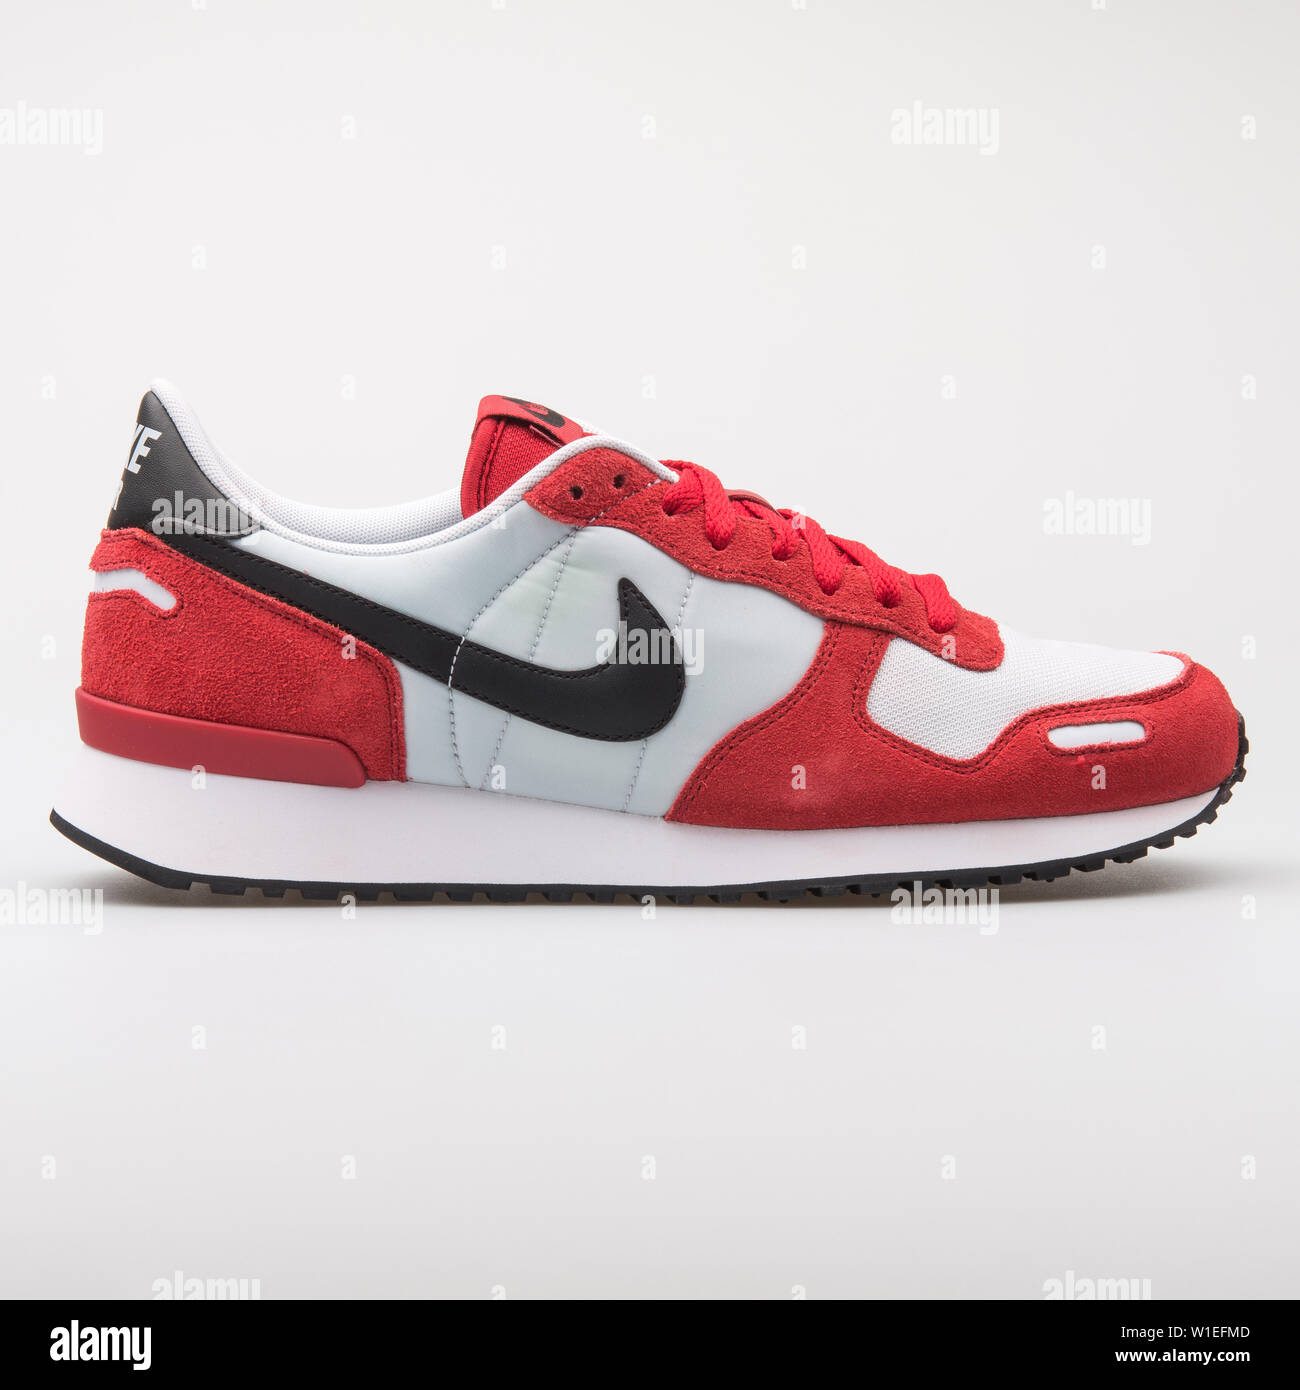 Nike Air Vrtx Sneakers Sale Online, UP TO 50% OFF